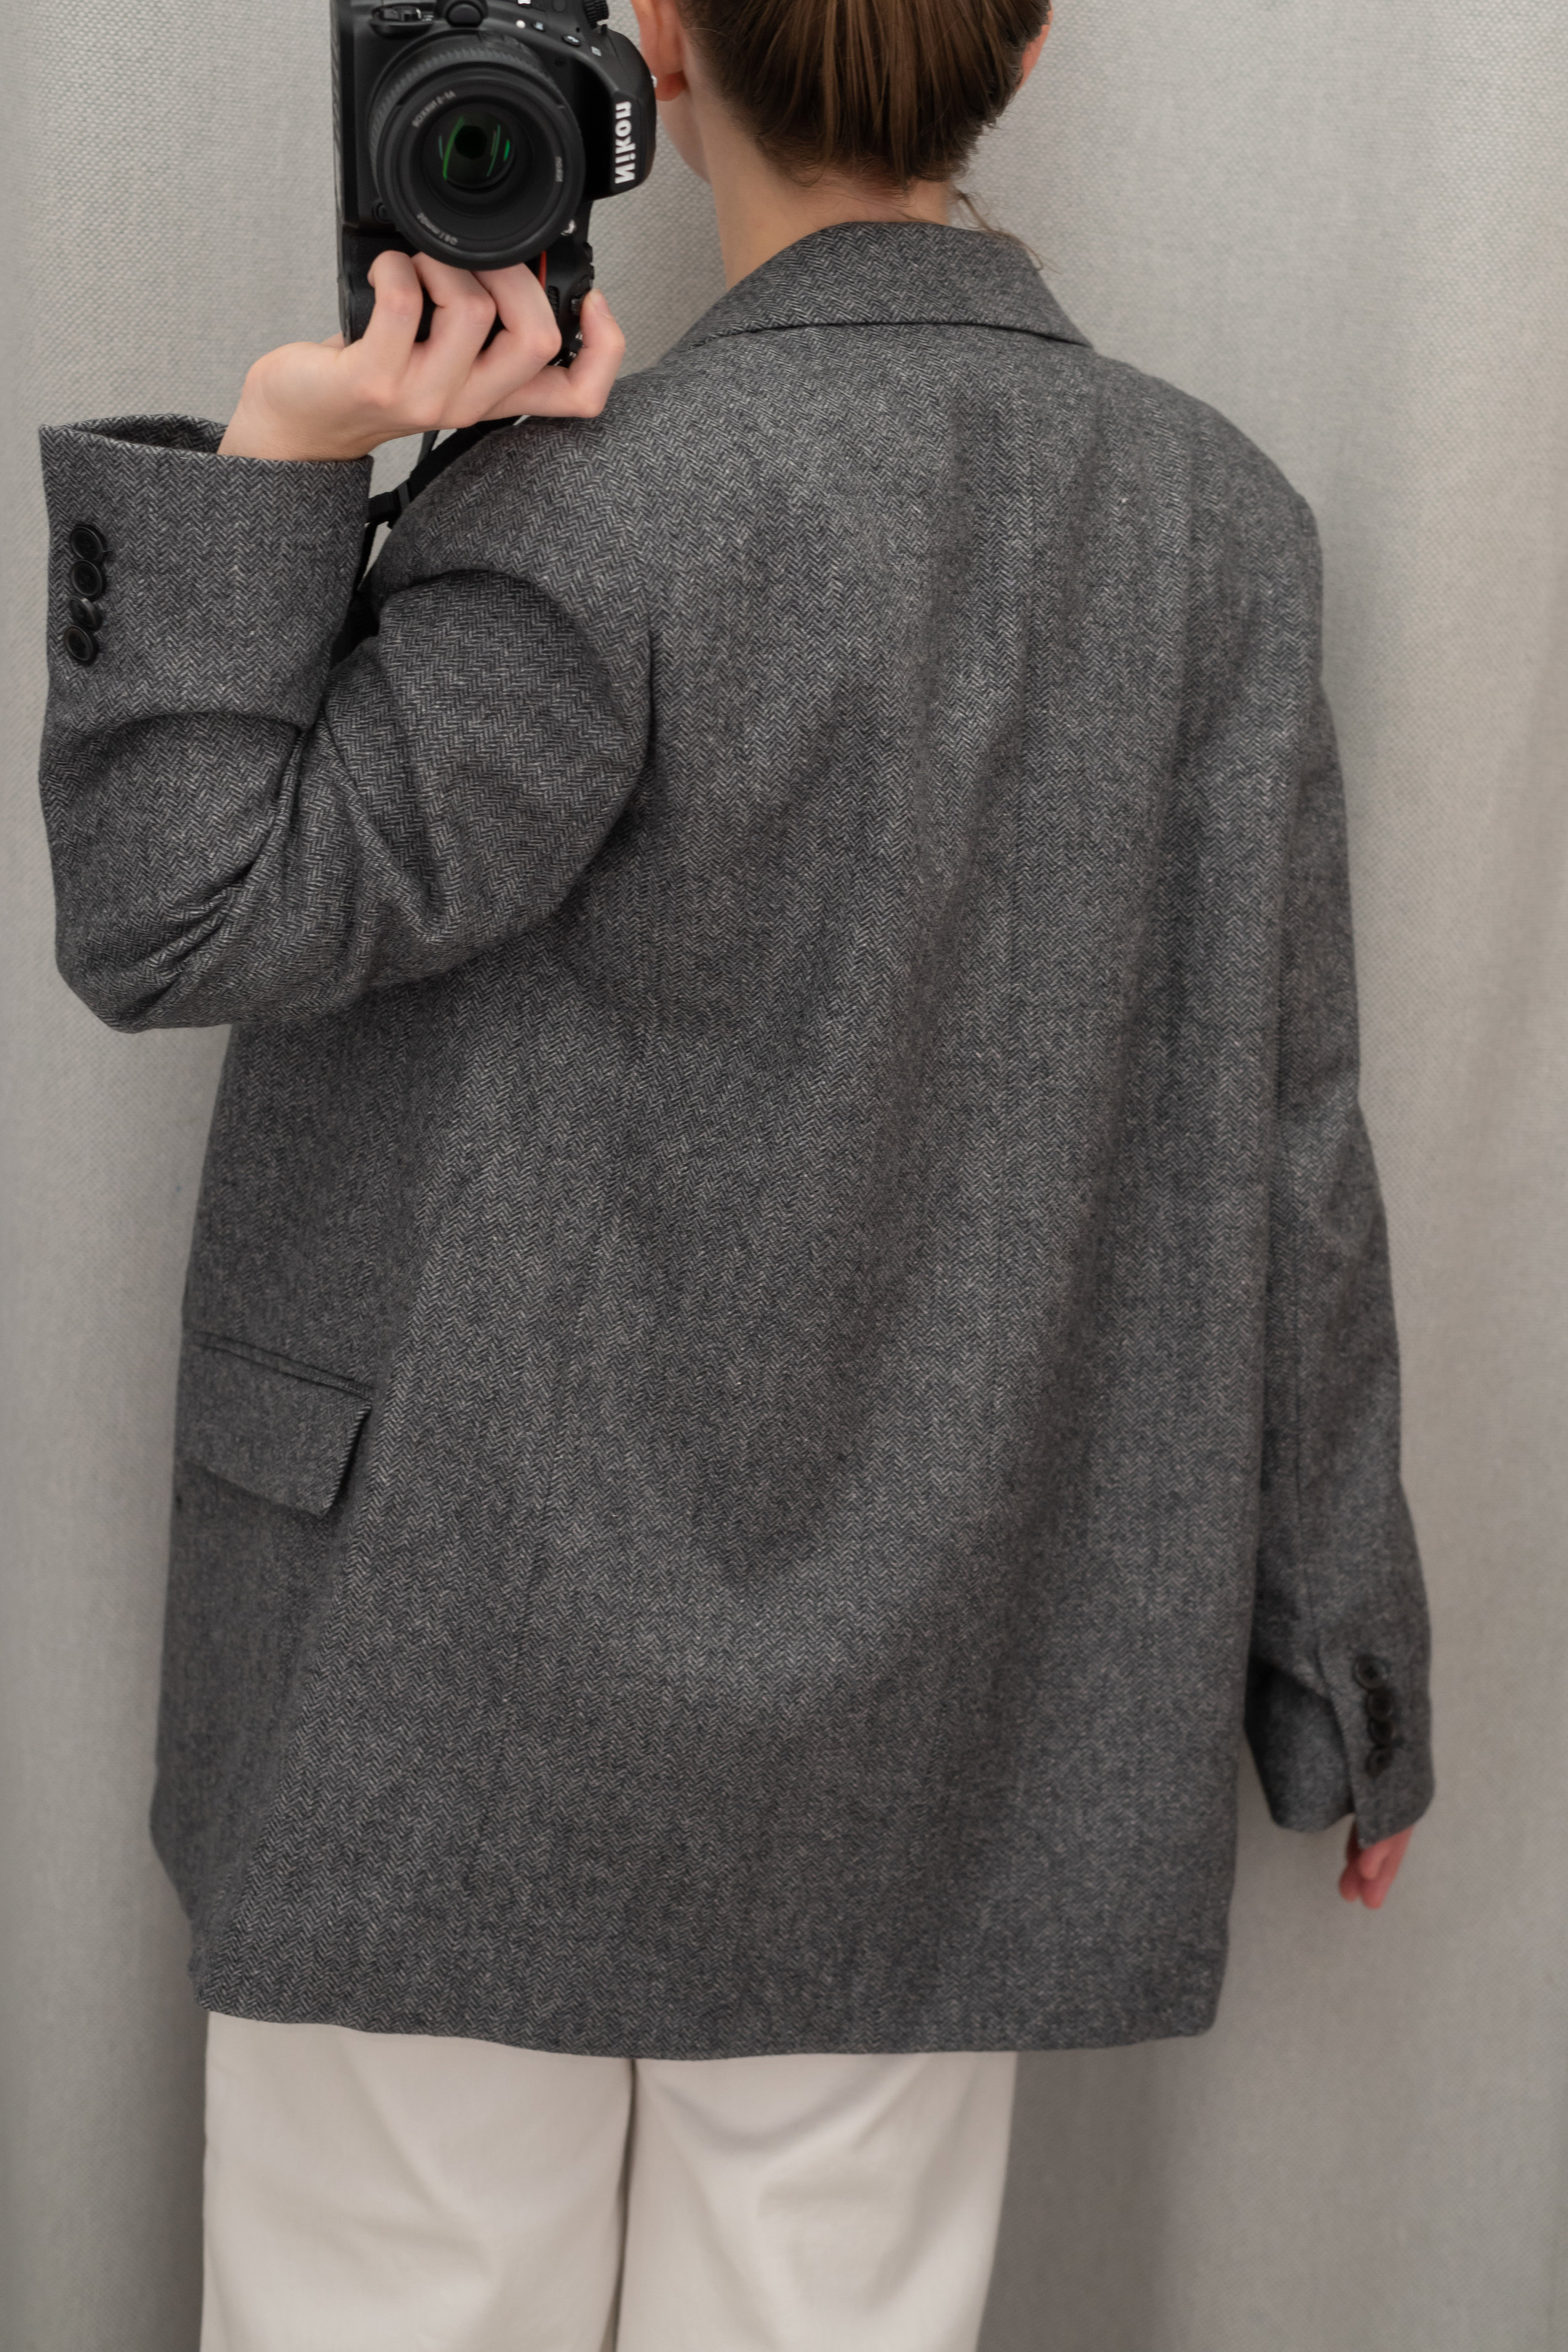 Everlane The Oversized Blazer - Size 4 - Back View